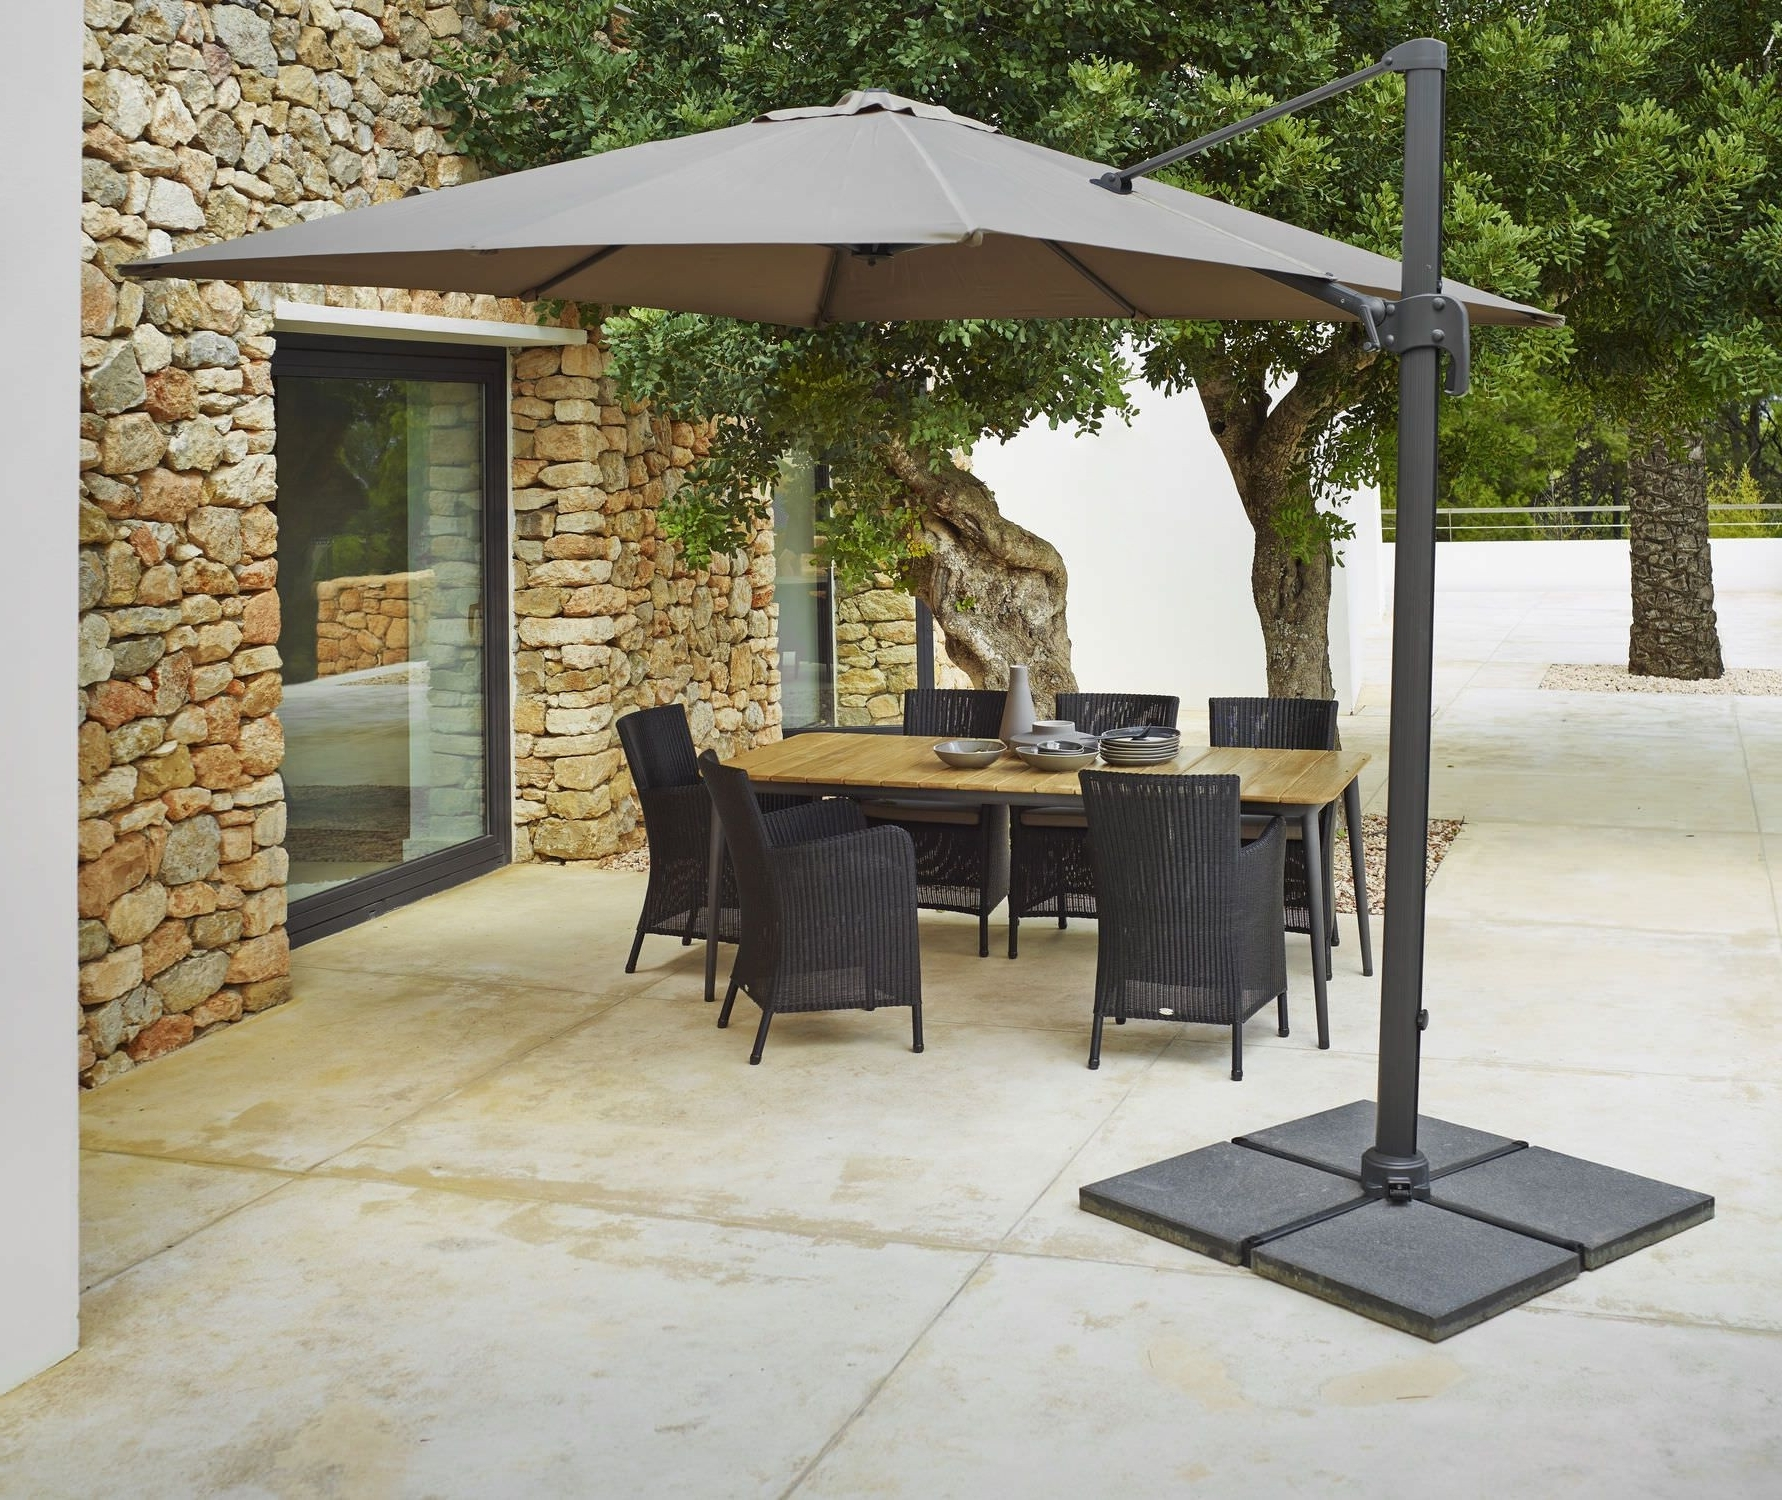 Patio Idea Intended For Rectangular Offset Patio Umbrellas (View 10 of 20)